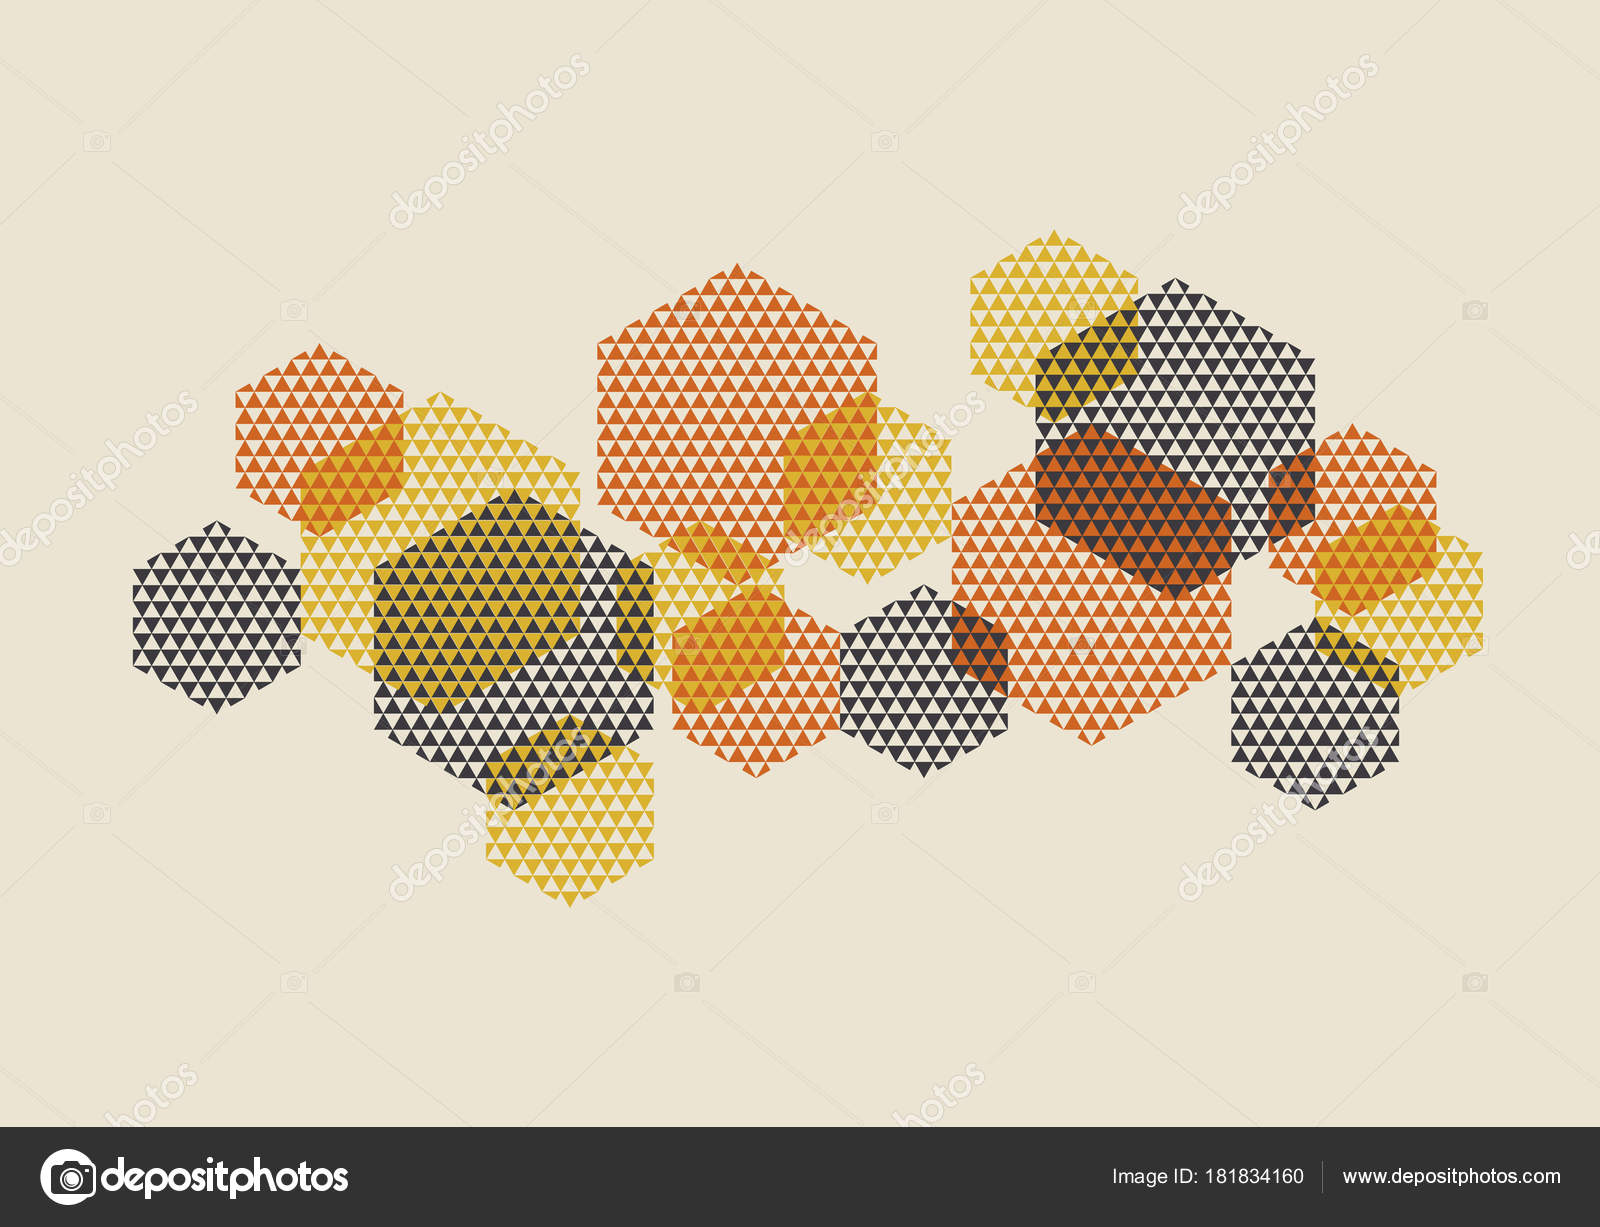 Geometric pattern vector illustration in retro 60s style vintage geometric pattern vector illustration in retro 60s style vintage 1970s geometry shapes graphic abstract design element for invitation header poster stopboris Choice Image